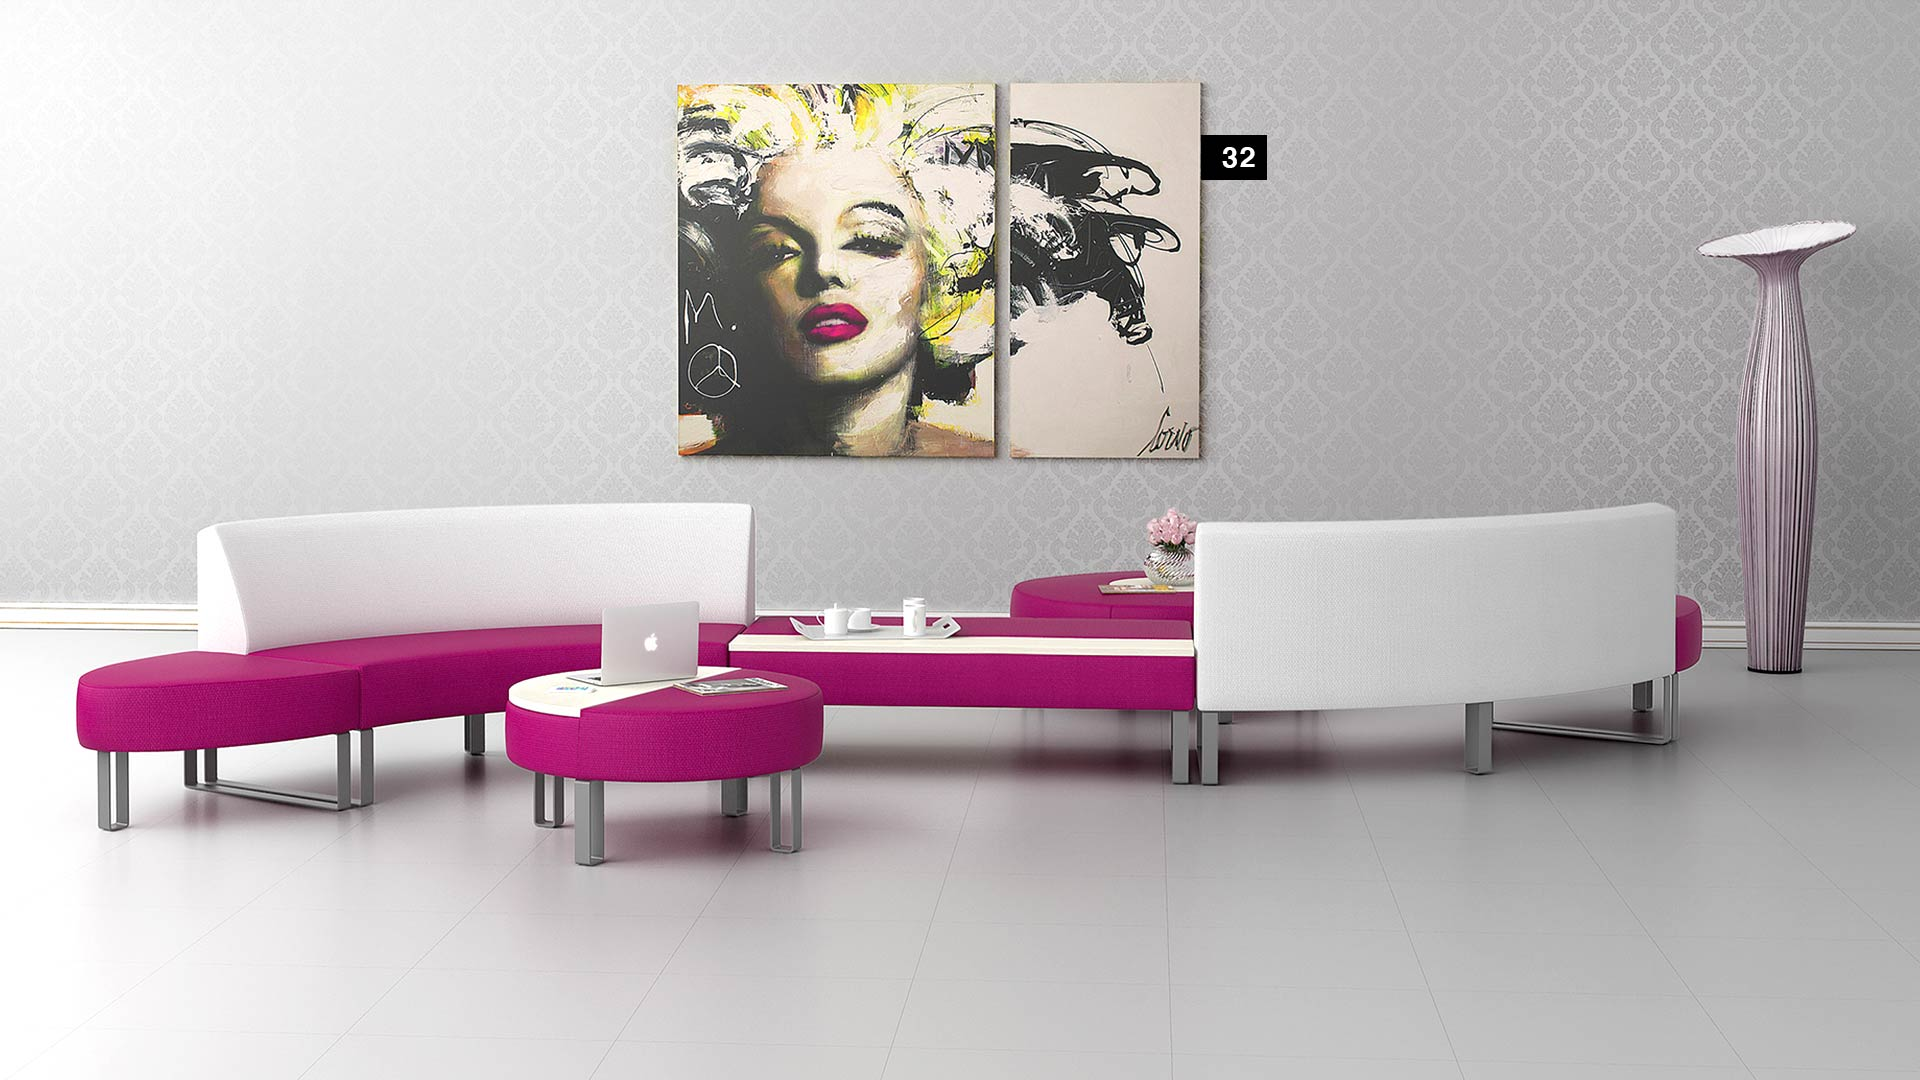 abstract-modern-furniture-groupe-lacasse-hip-hop-lounge